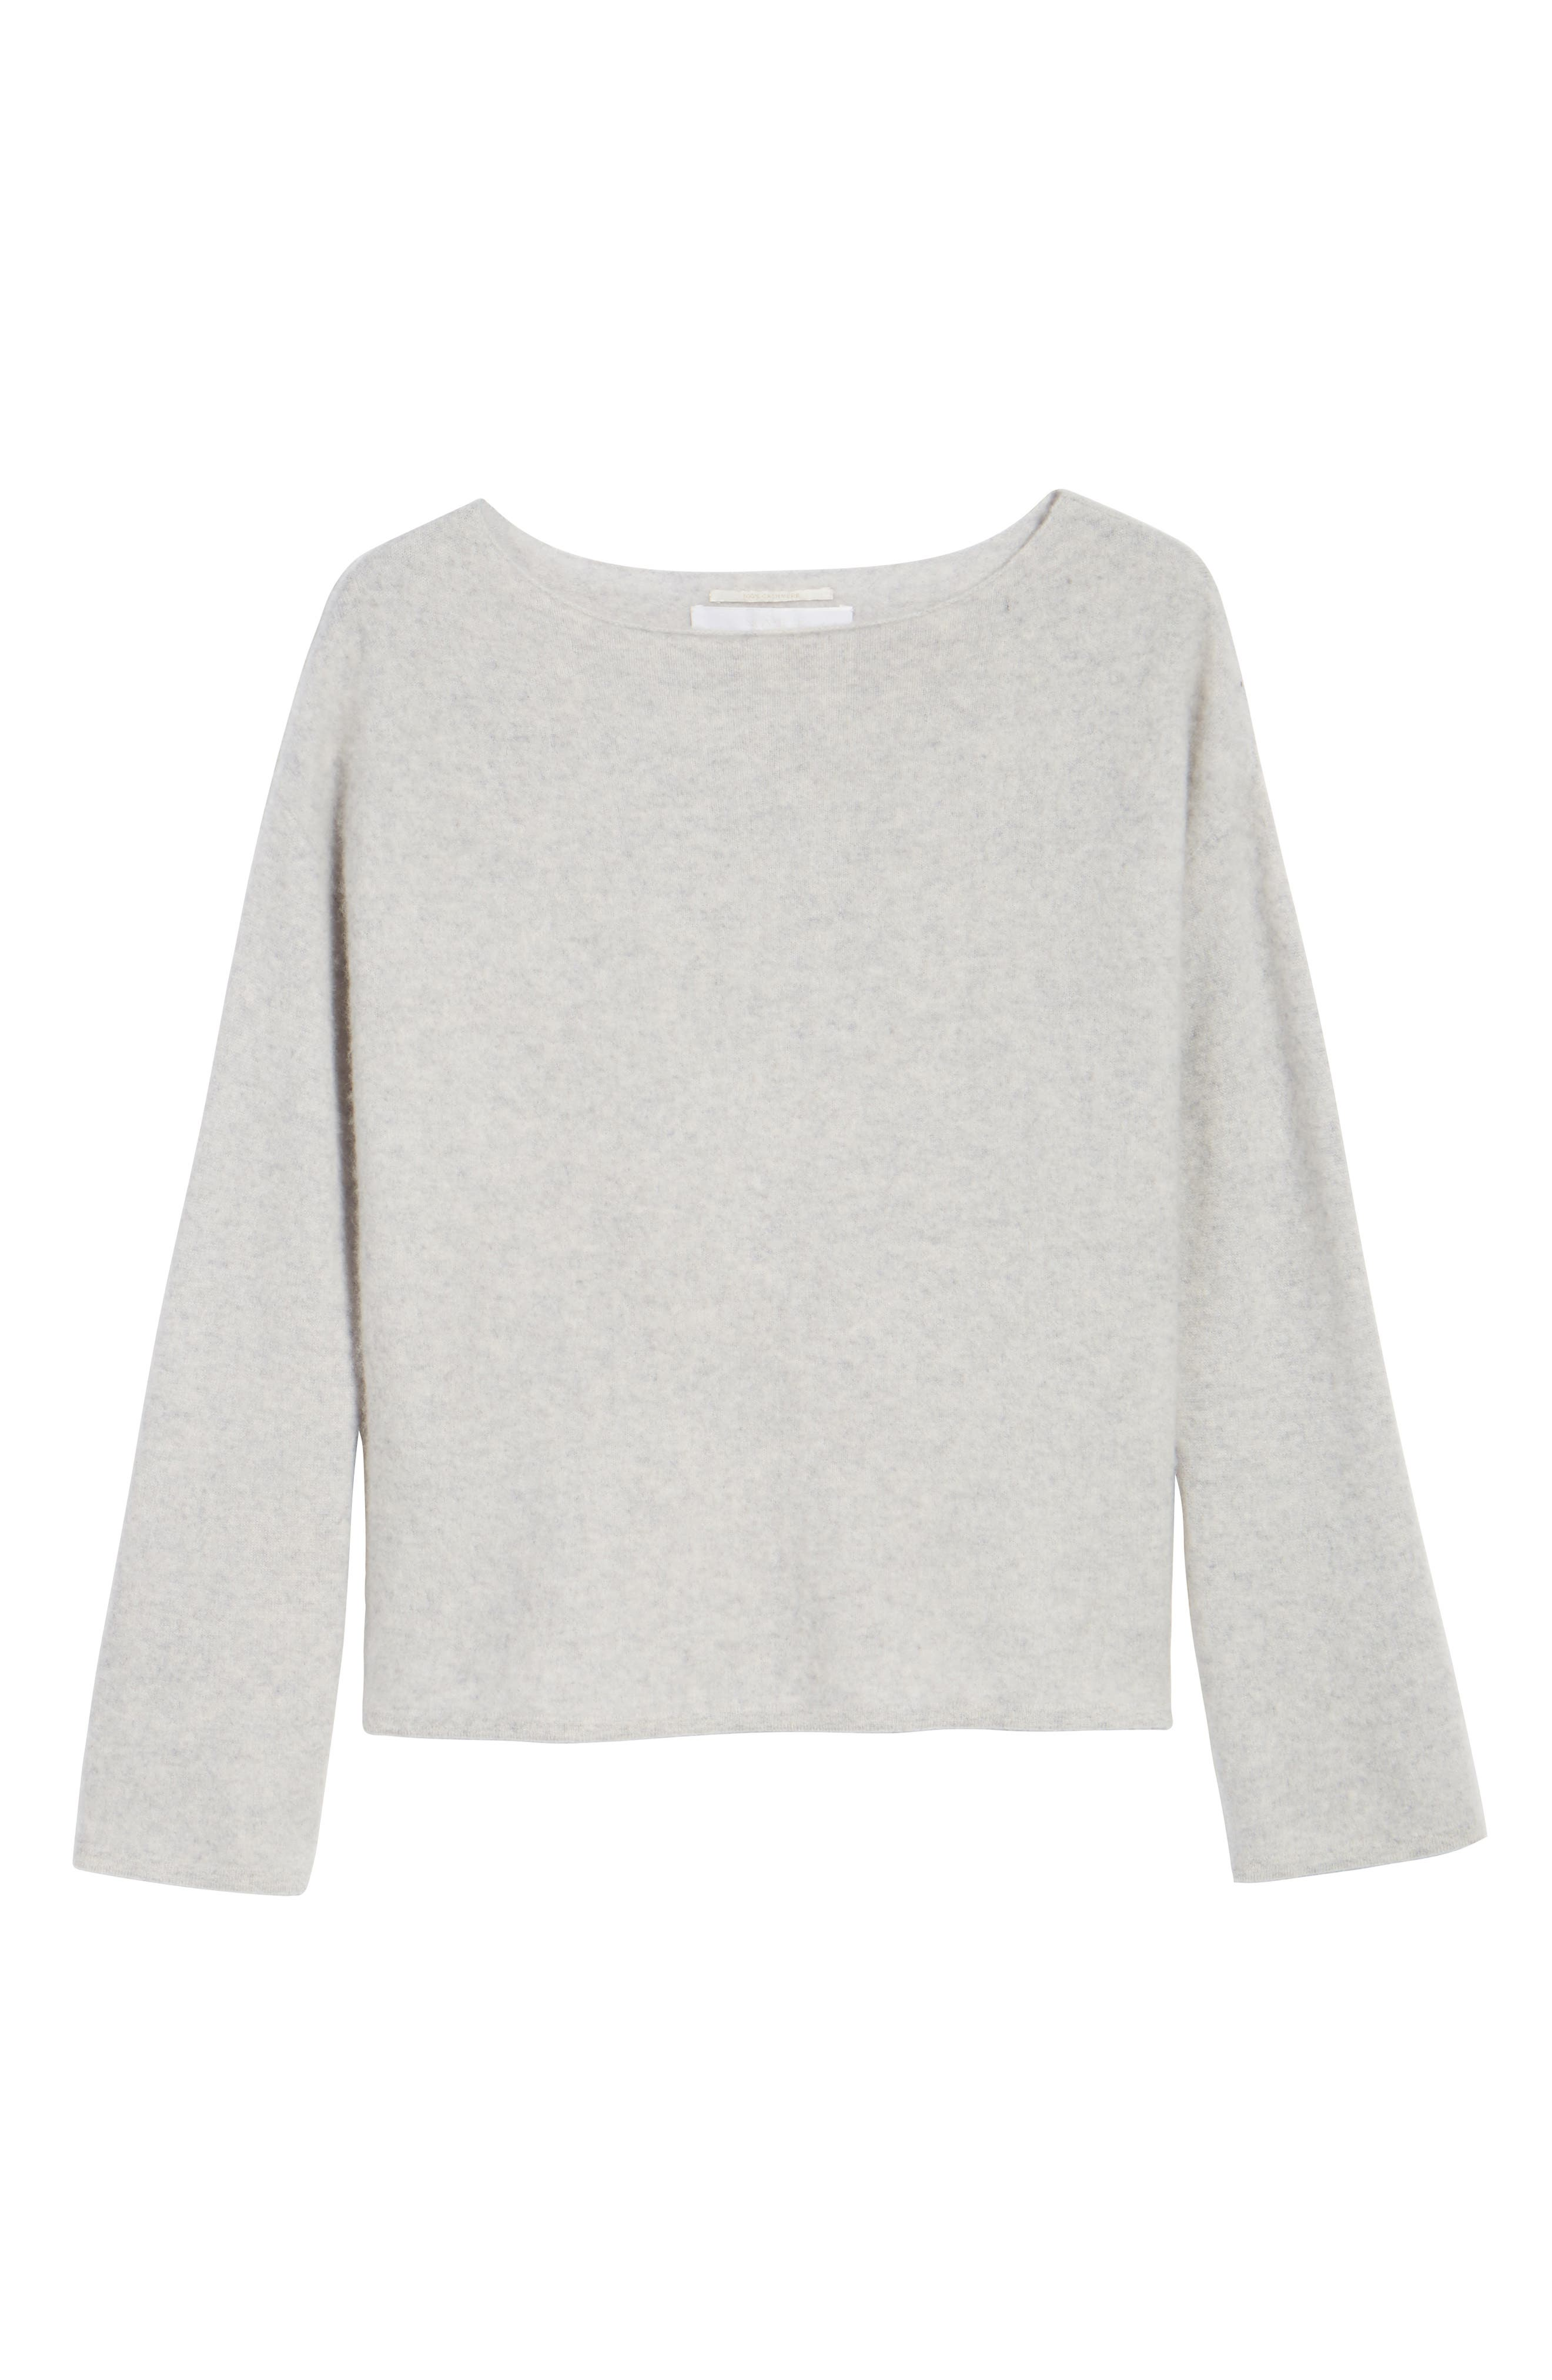 Boiled Cashmere Pullover,                             Alternate thumbnail 7, color,                             Grey Clay Heather